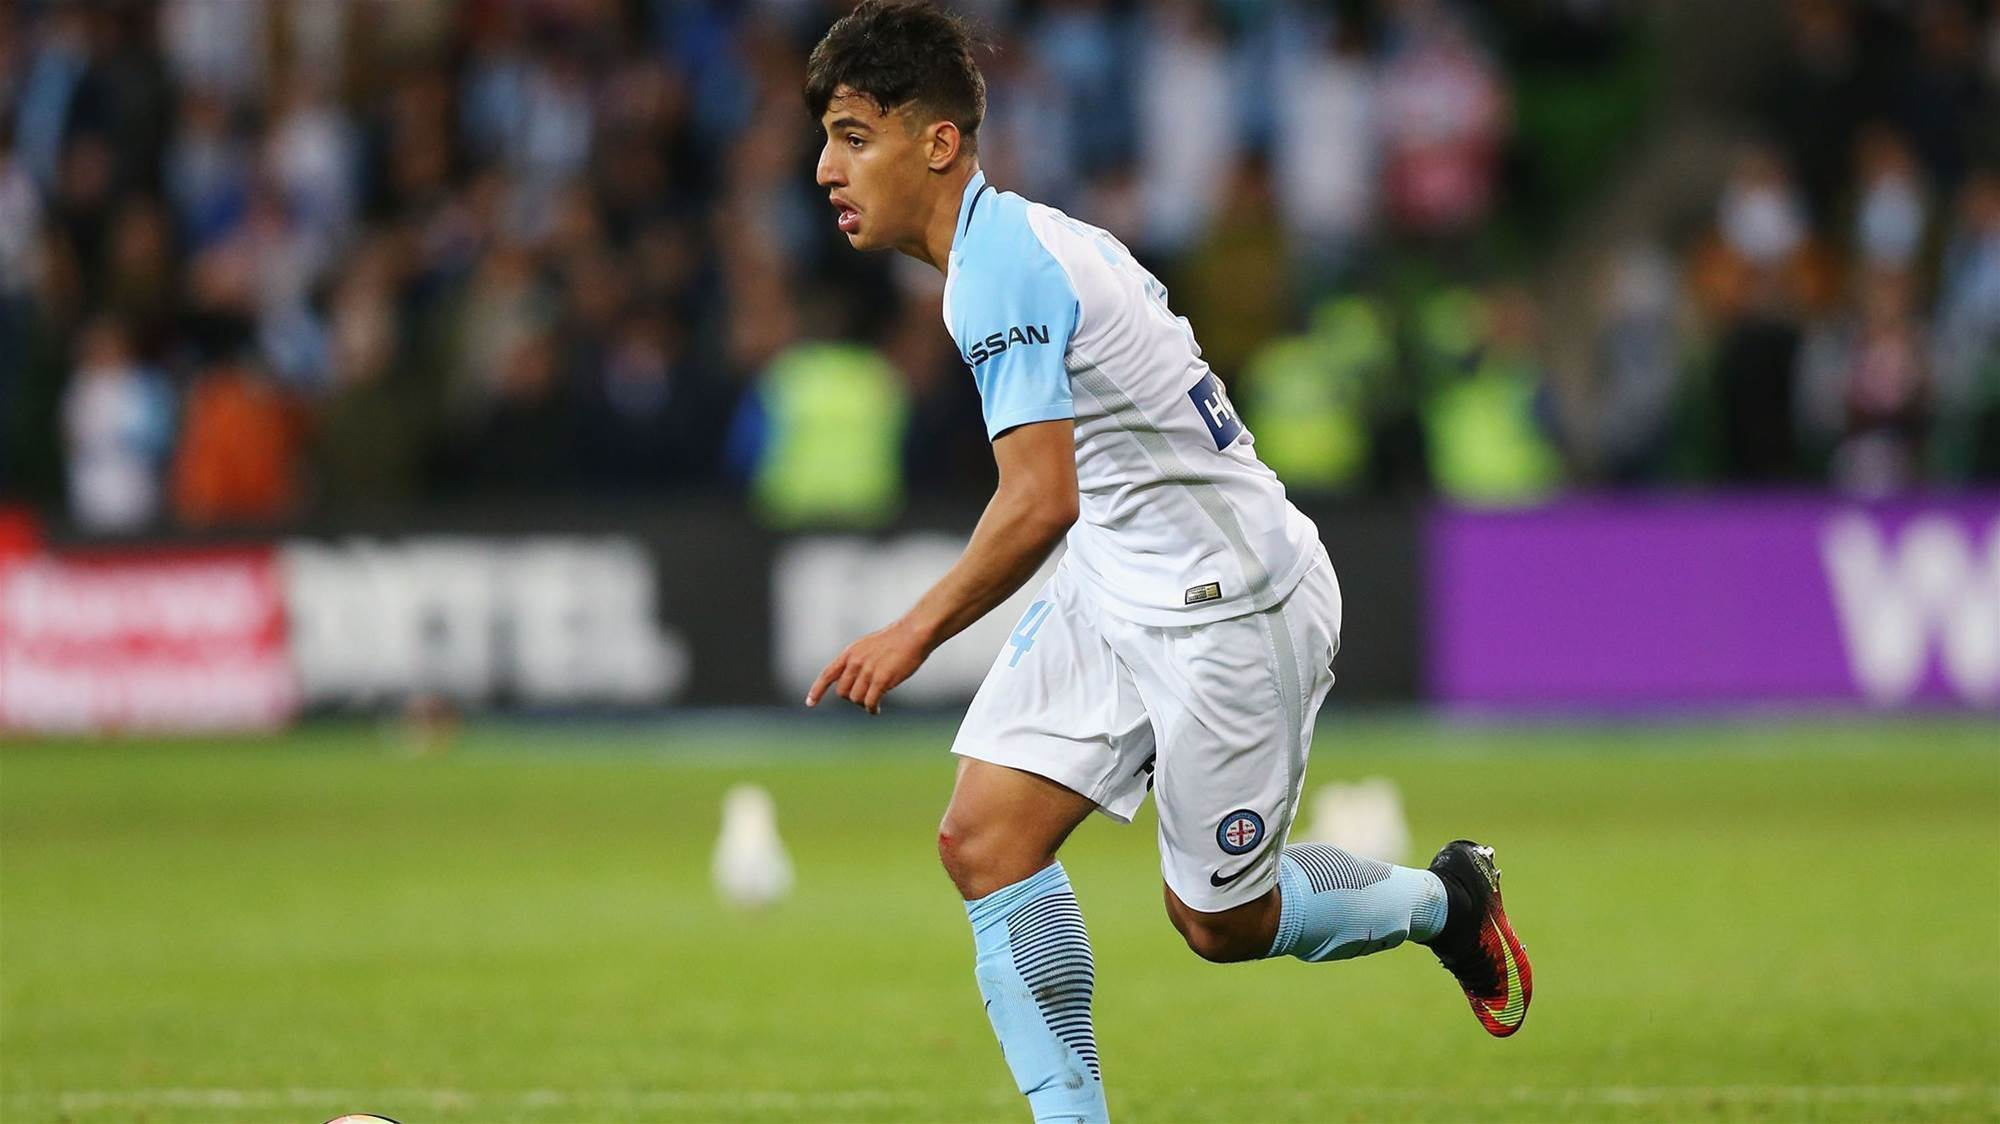 Melbourne City edge out Wanderers in friendly